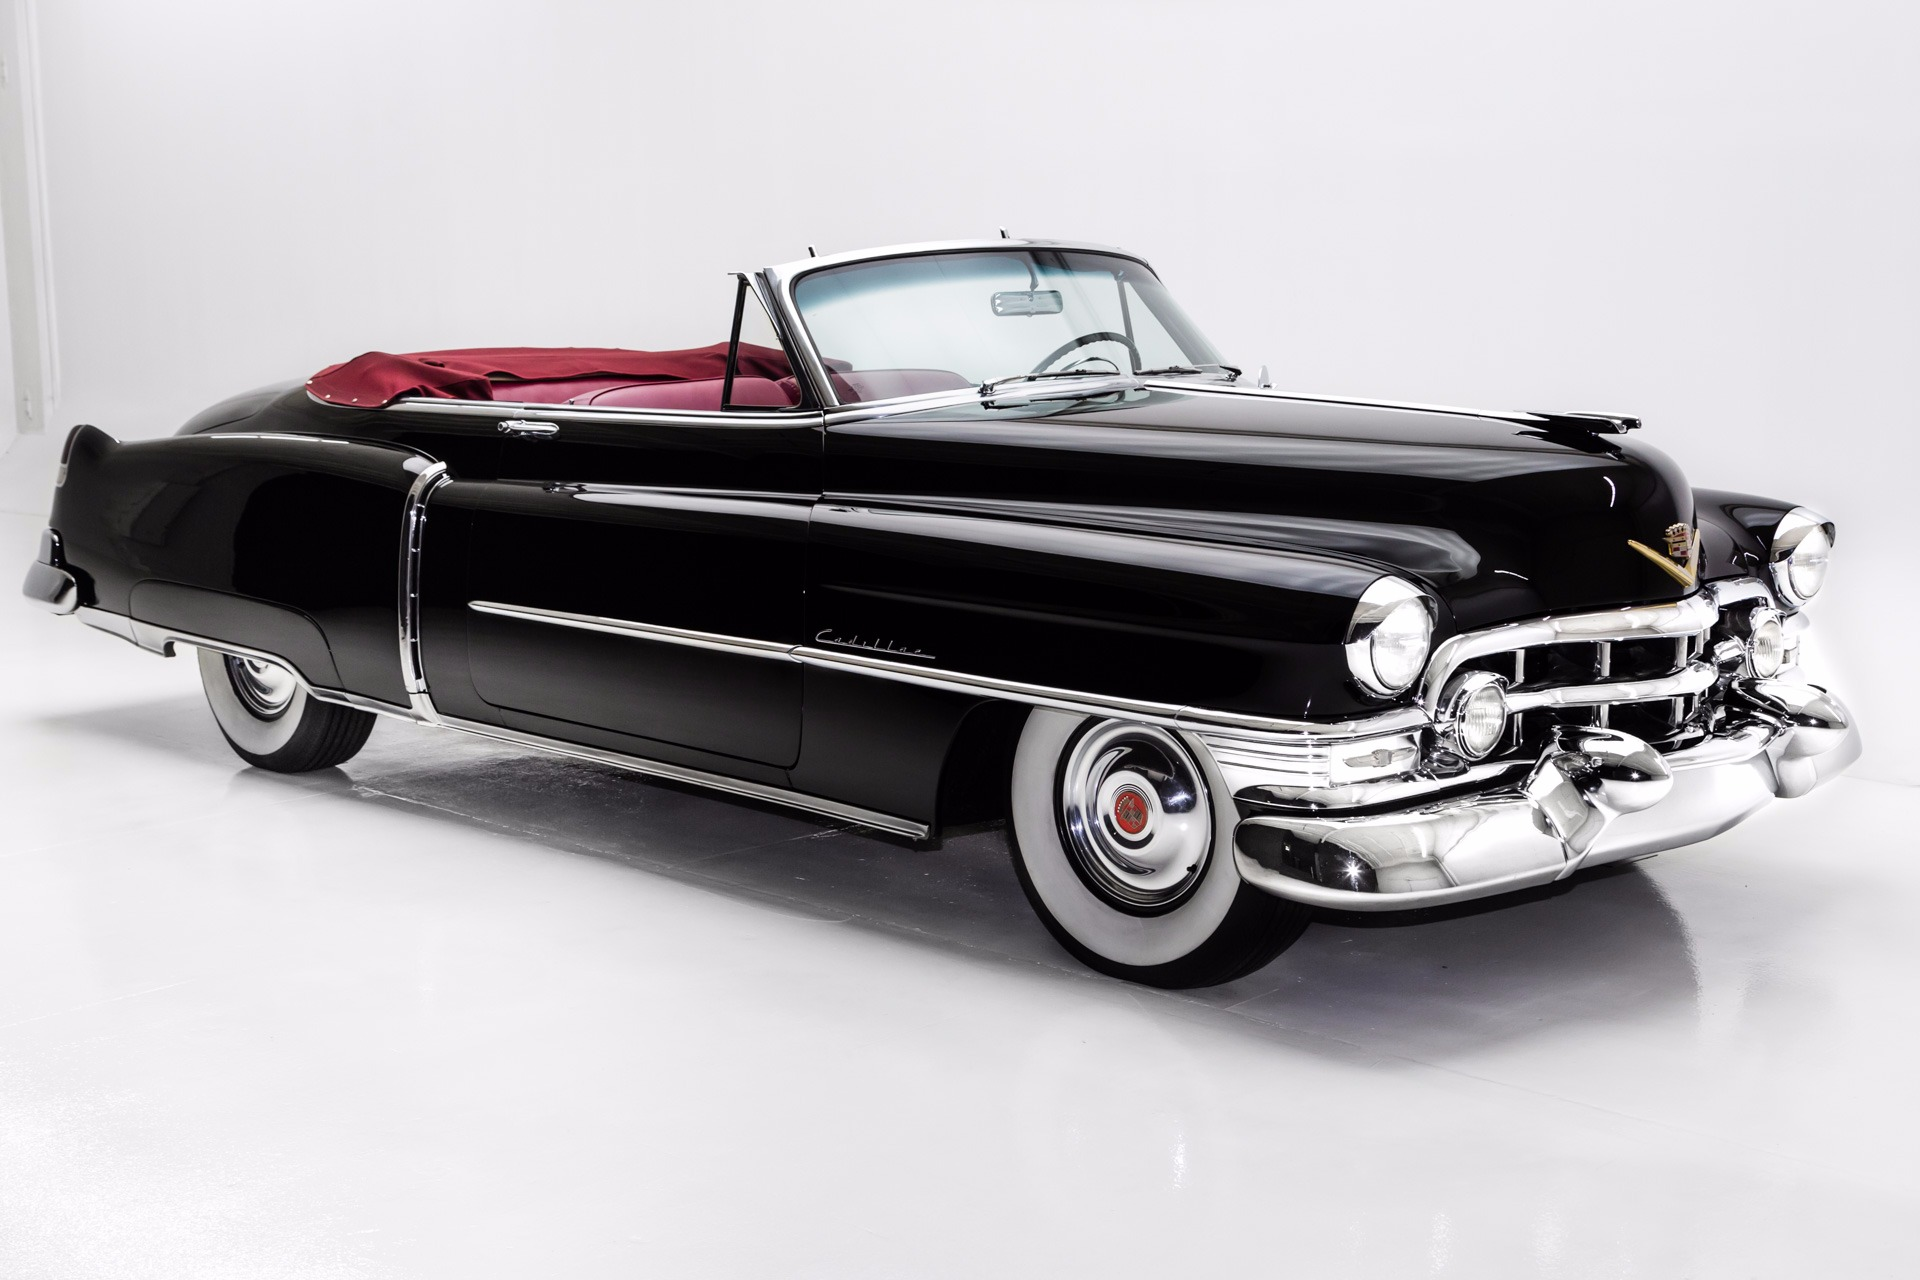 For Sale Used 1952 Cadillac Series 62 Convertible Red Leather | American Dream Machines Des Moines IA 50309